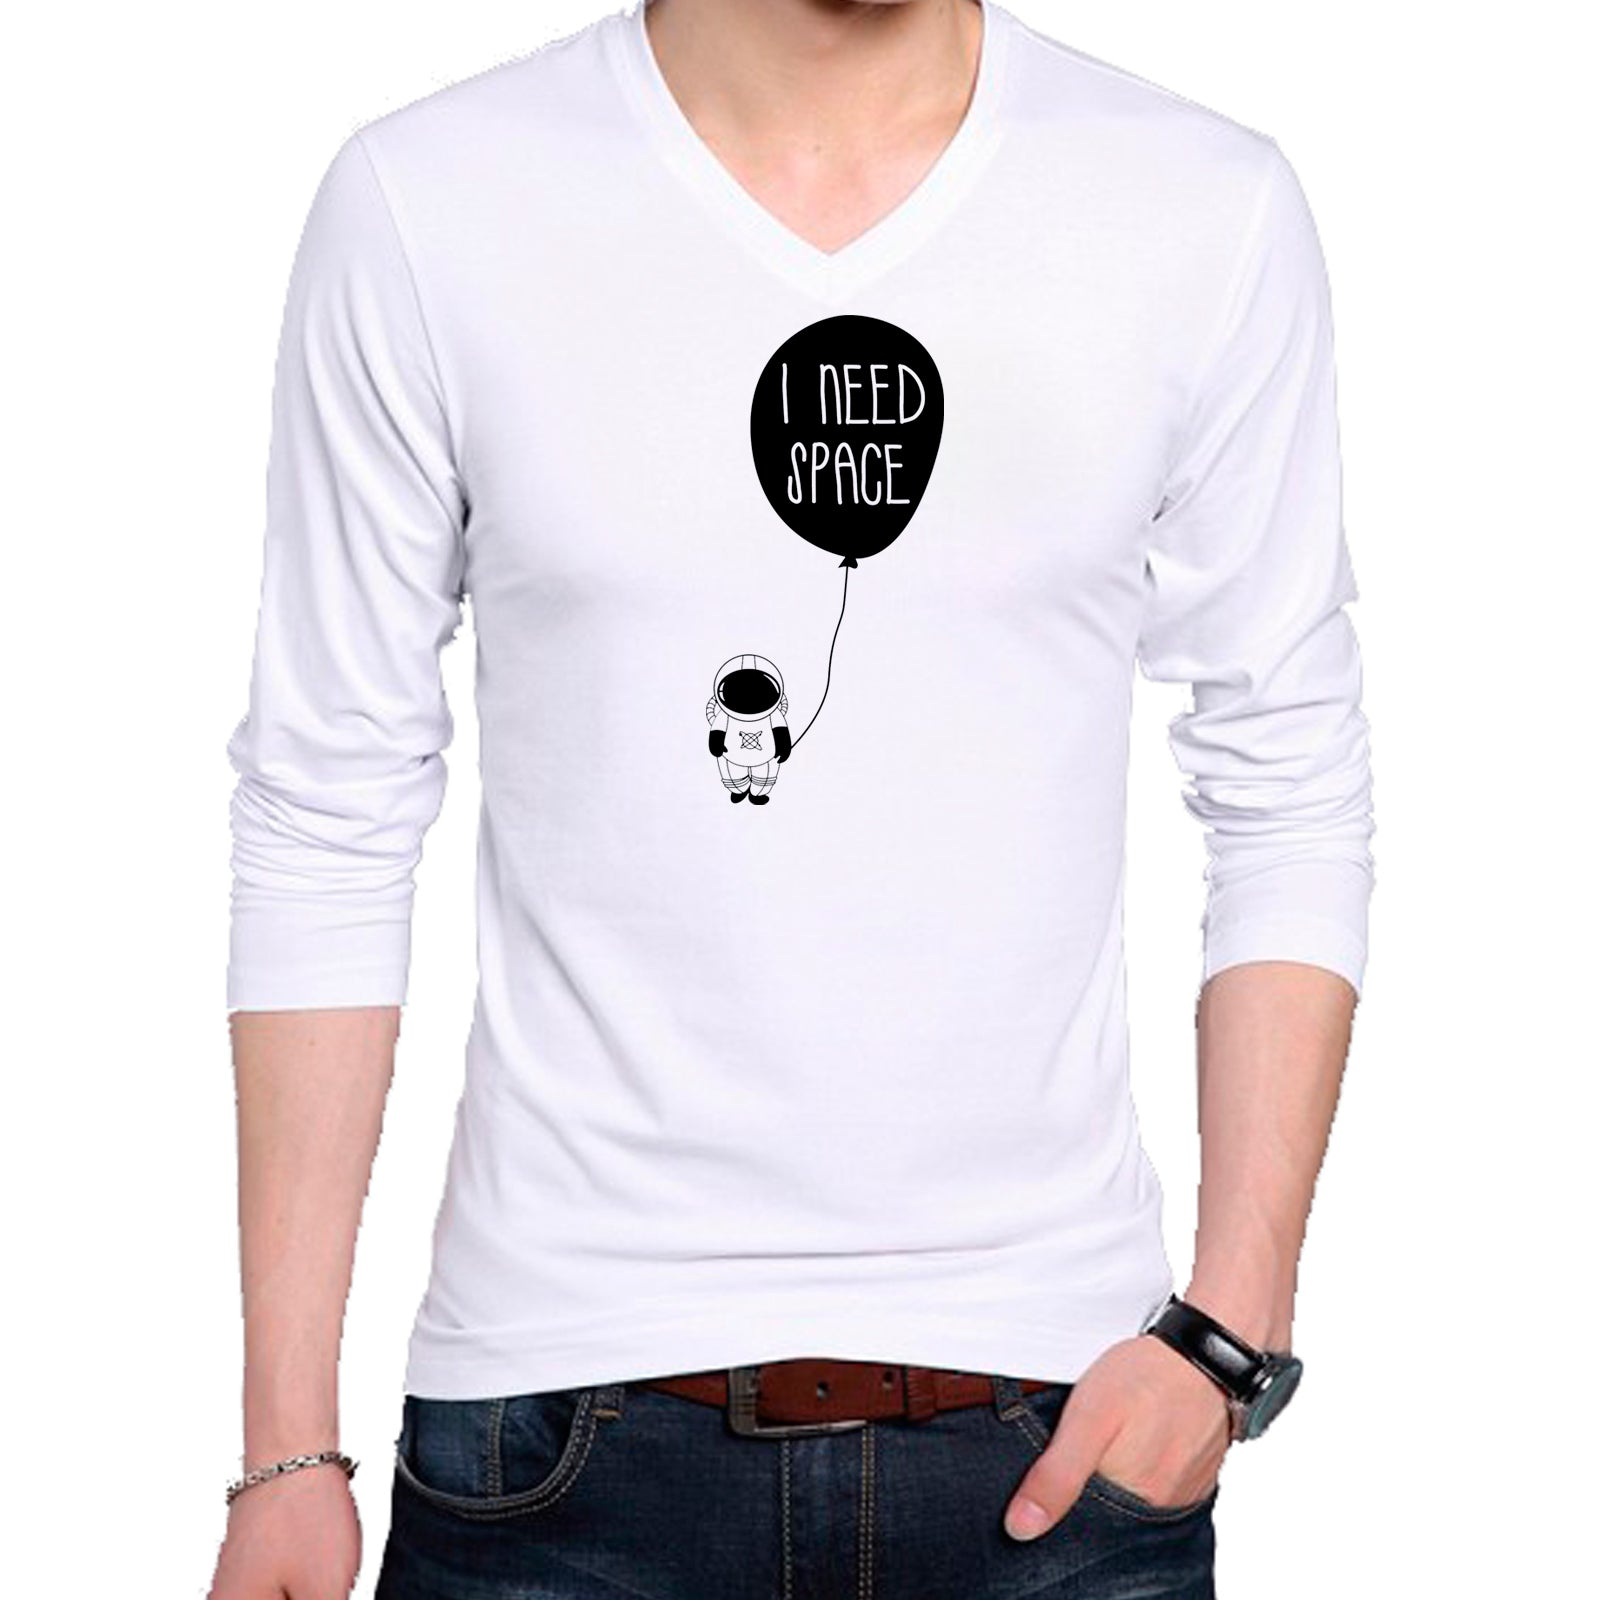 T Shirts for Men I Need Space White T Shirt V Neck Full Sleeve